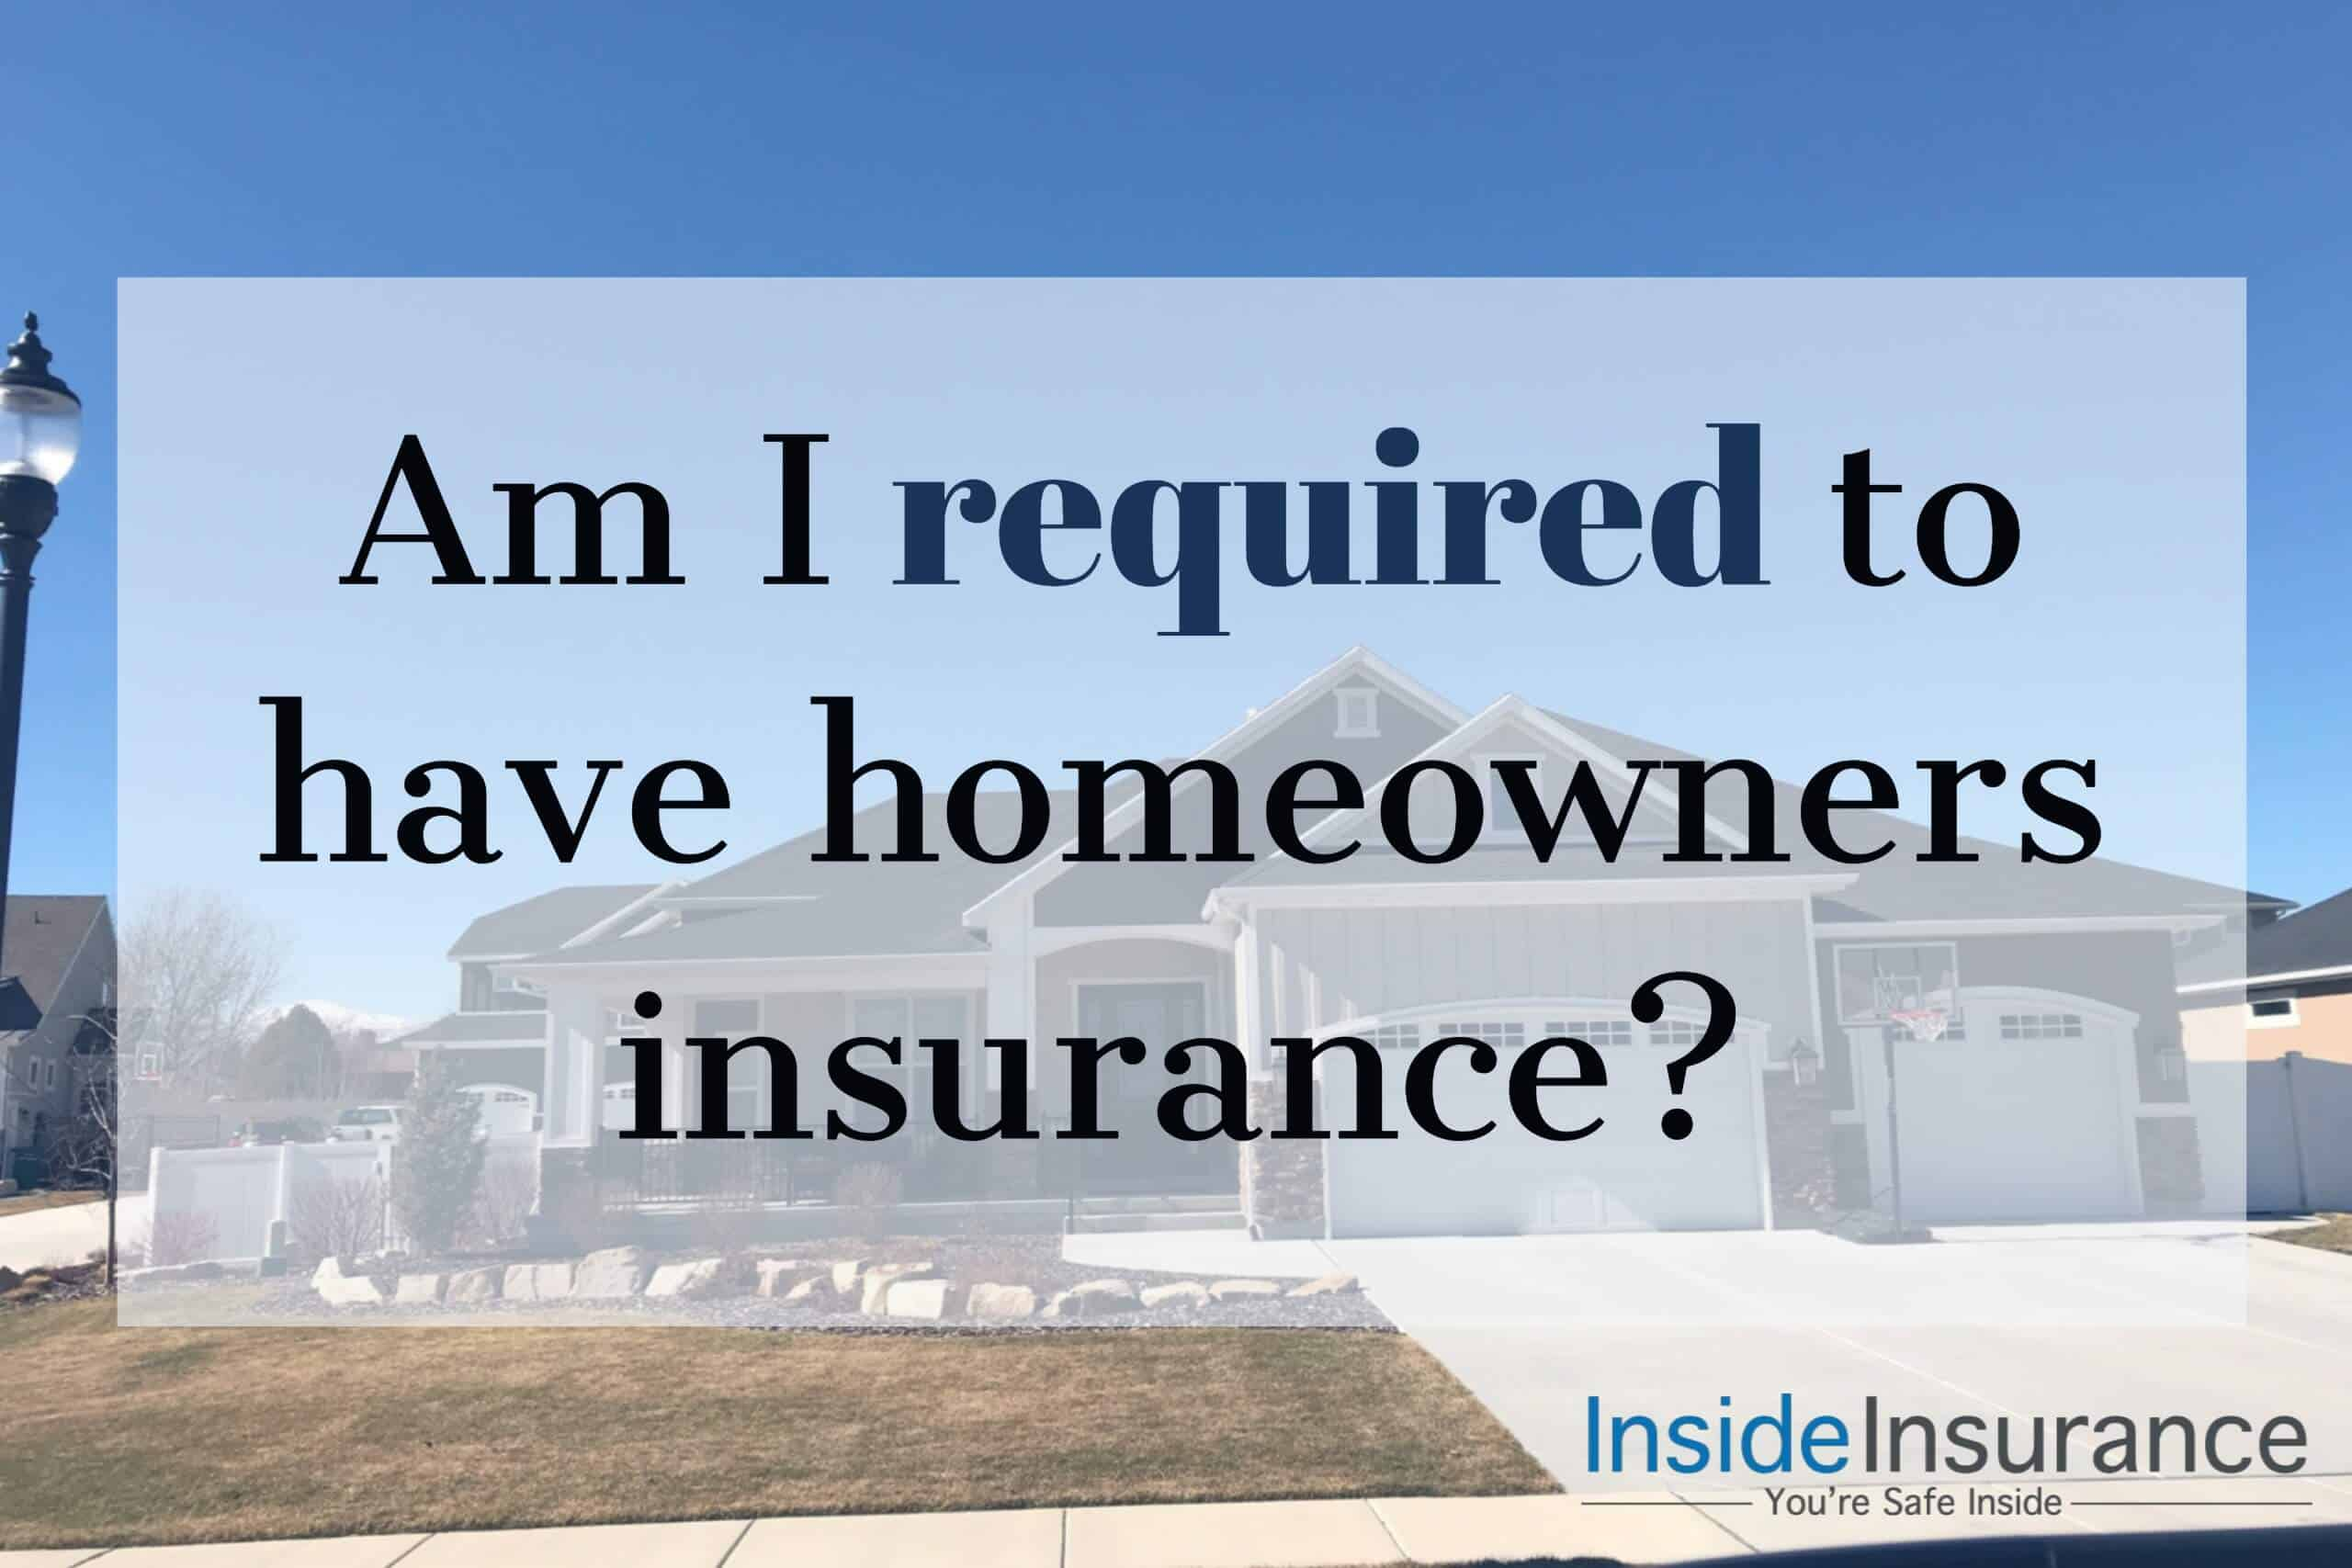 "alt=""A mansion on the background with a note that says 'Am I required to have a homeowners insurance'."""